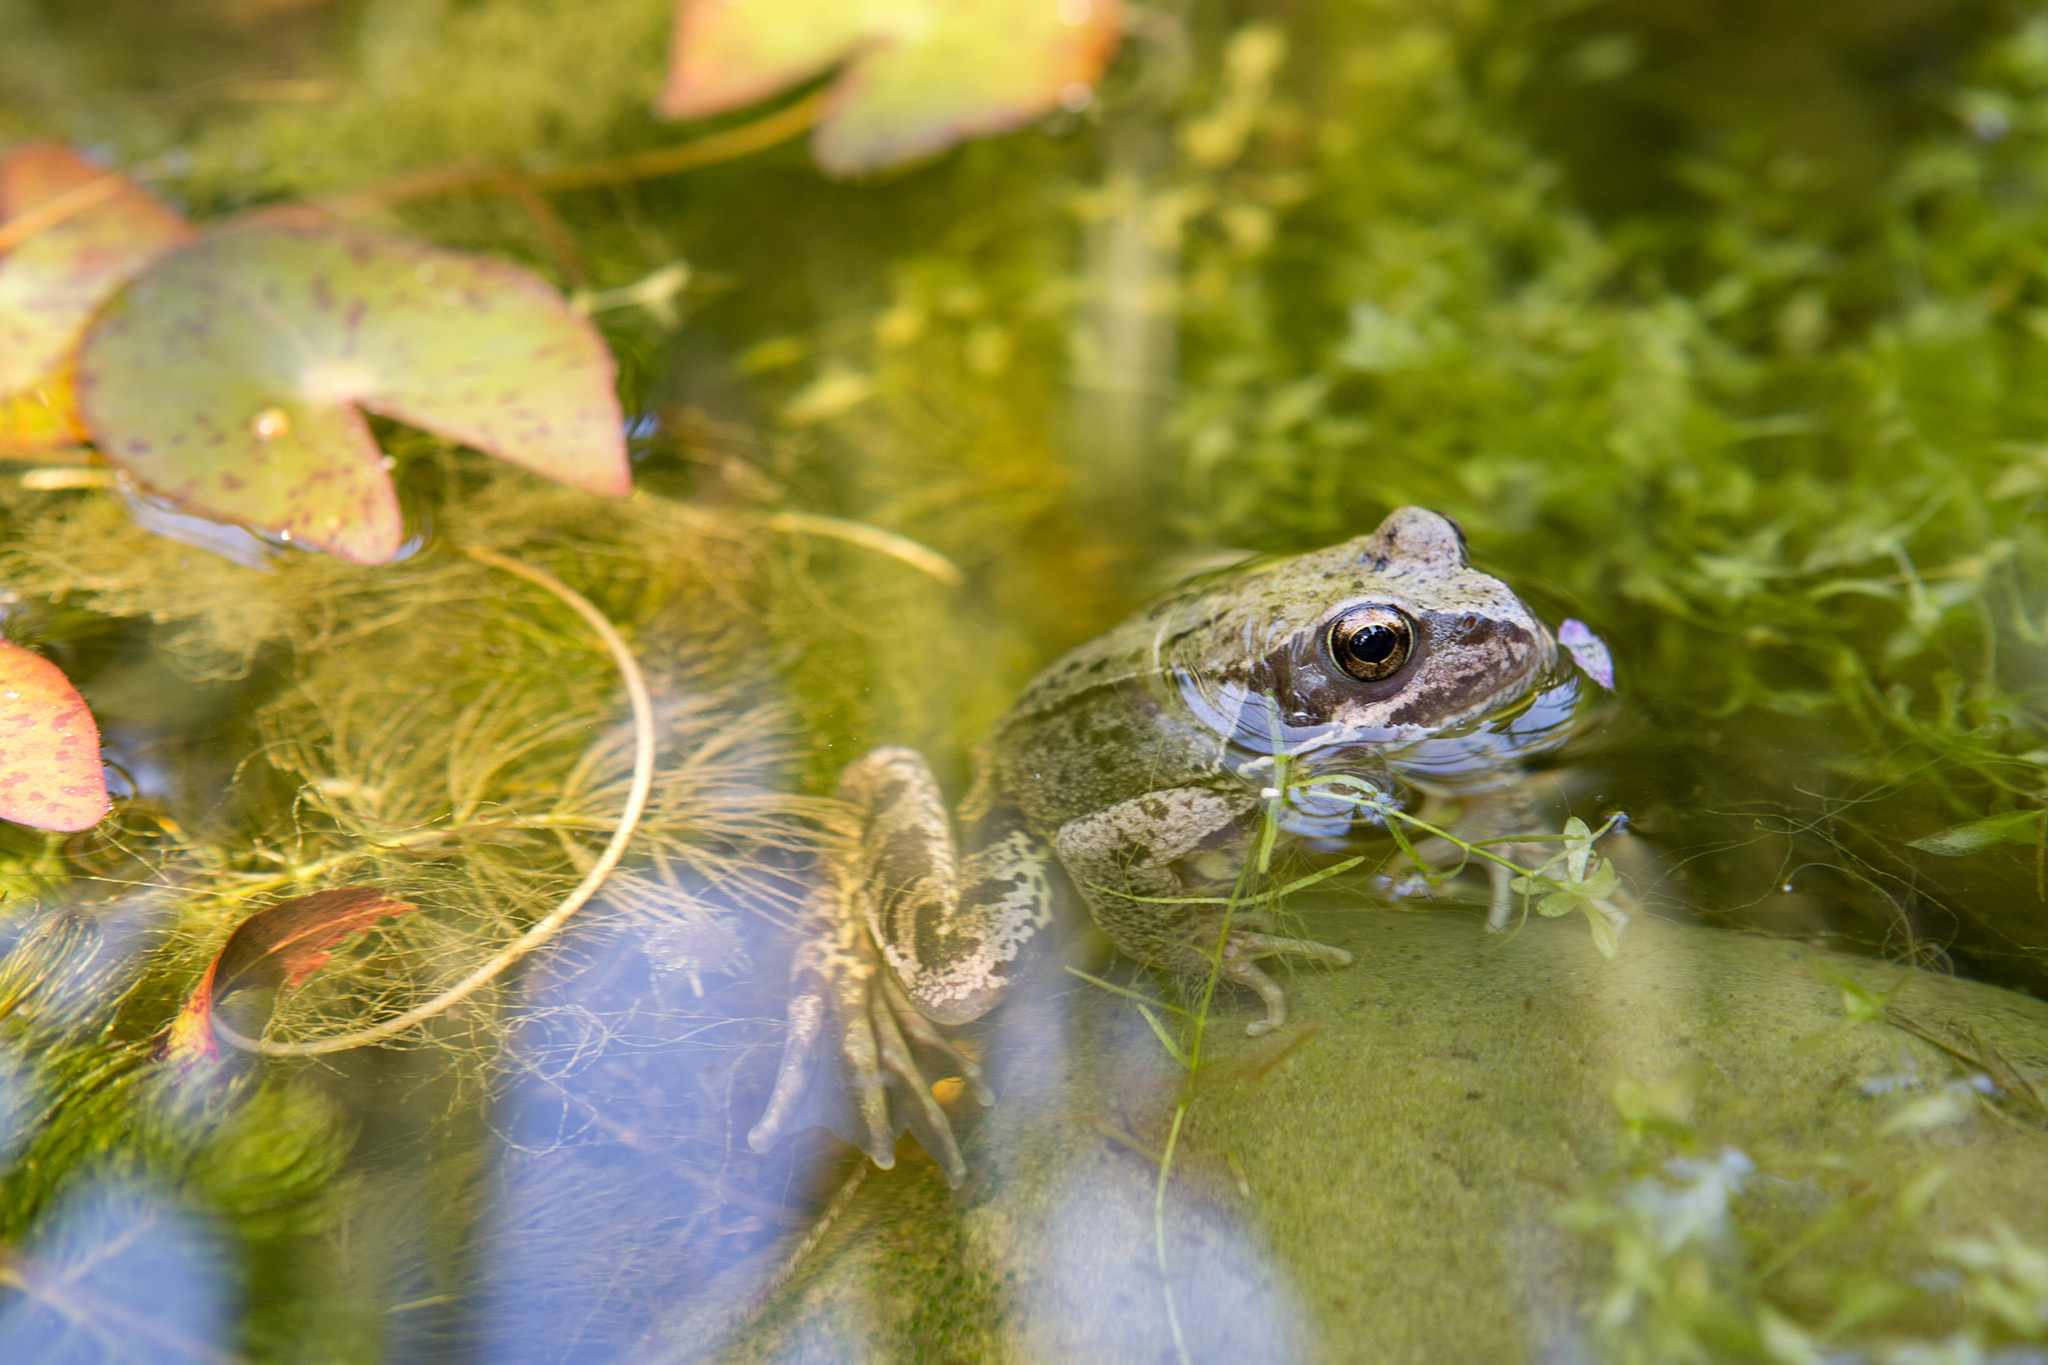 Common frog in pond